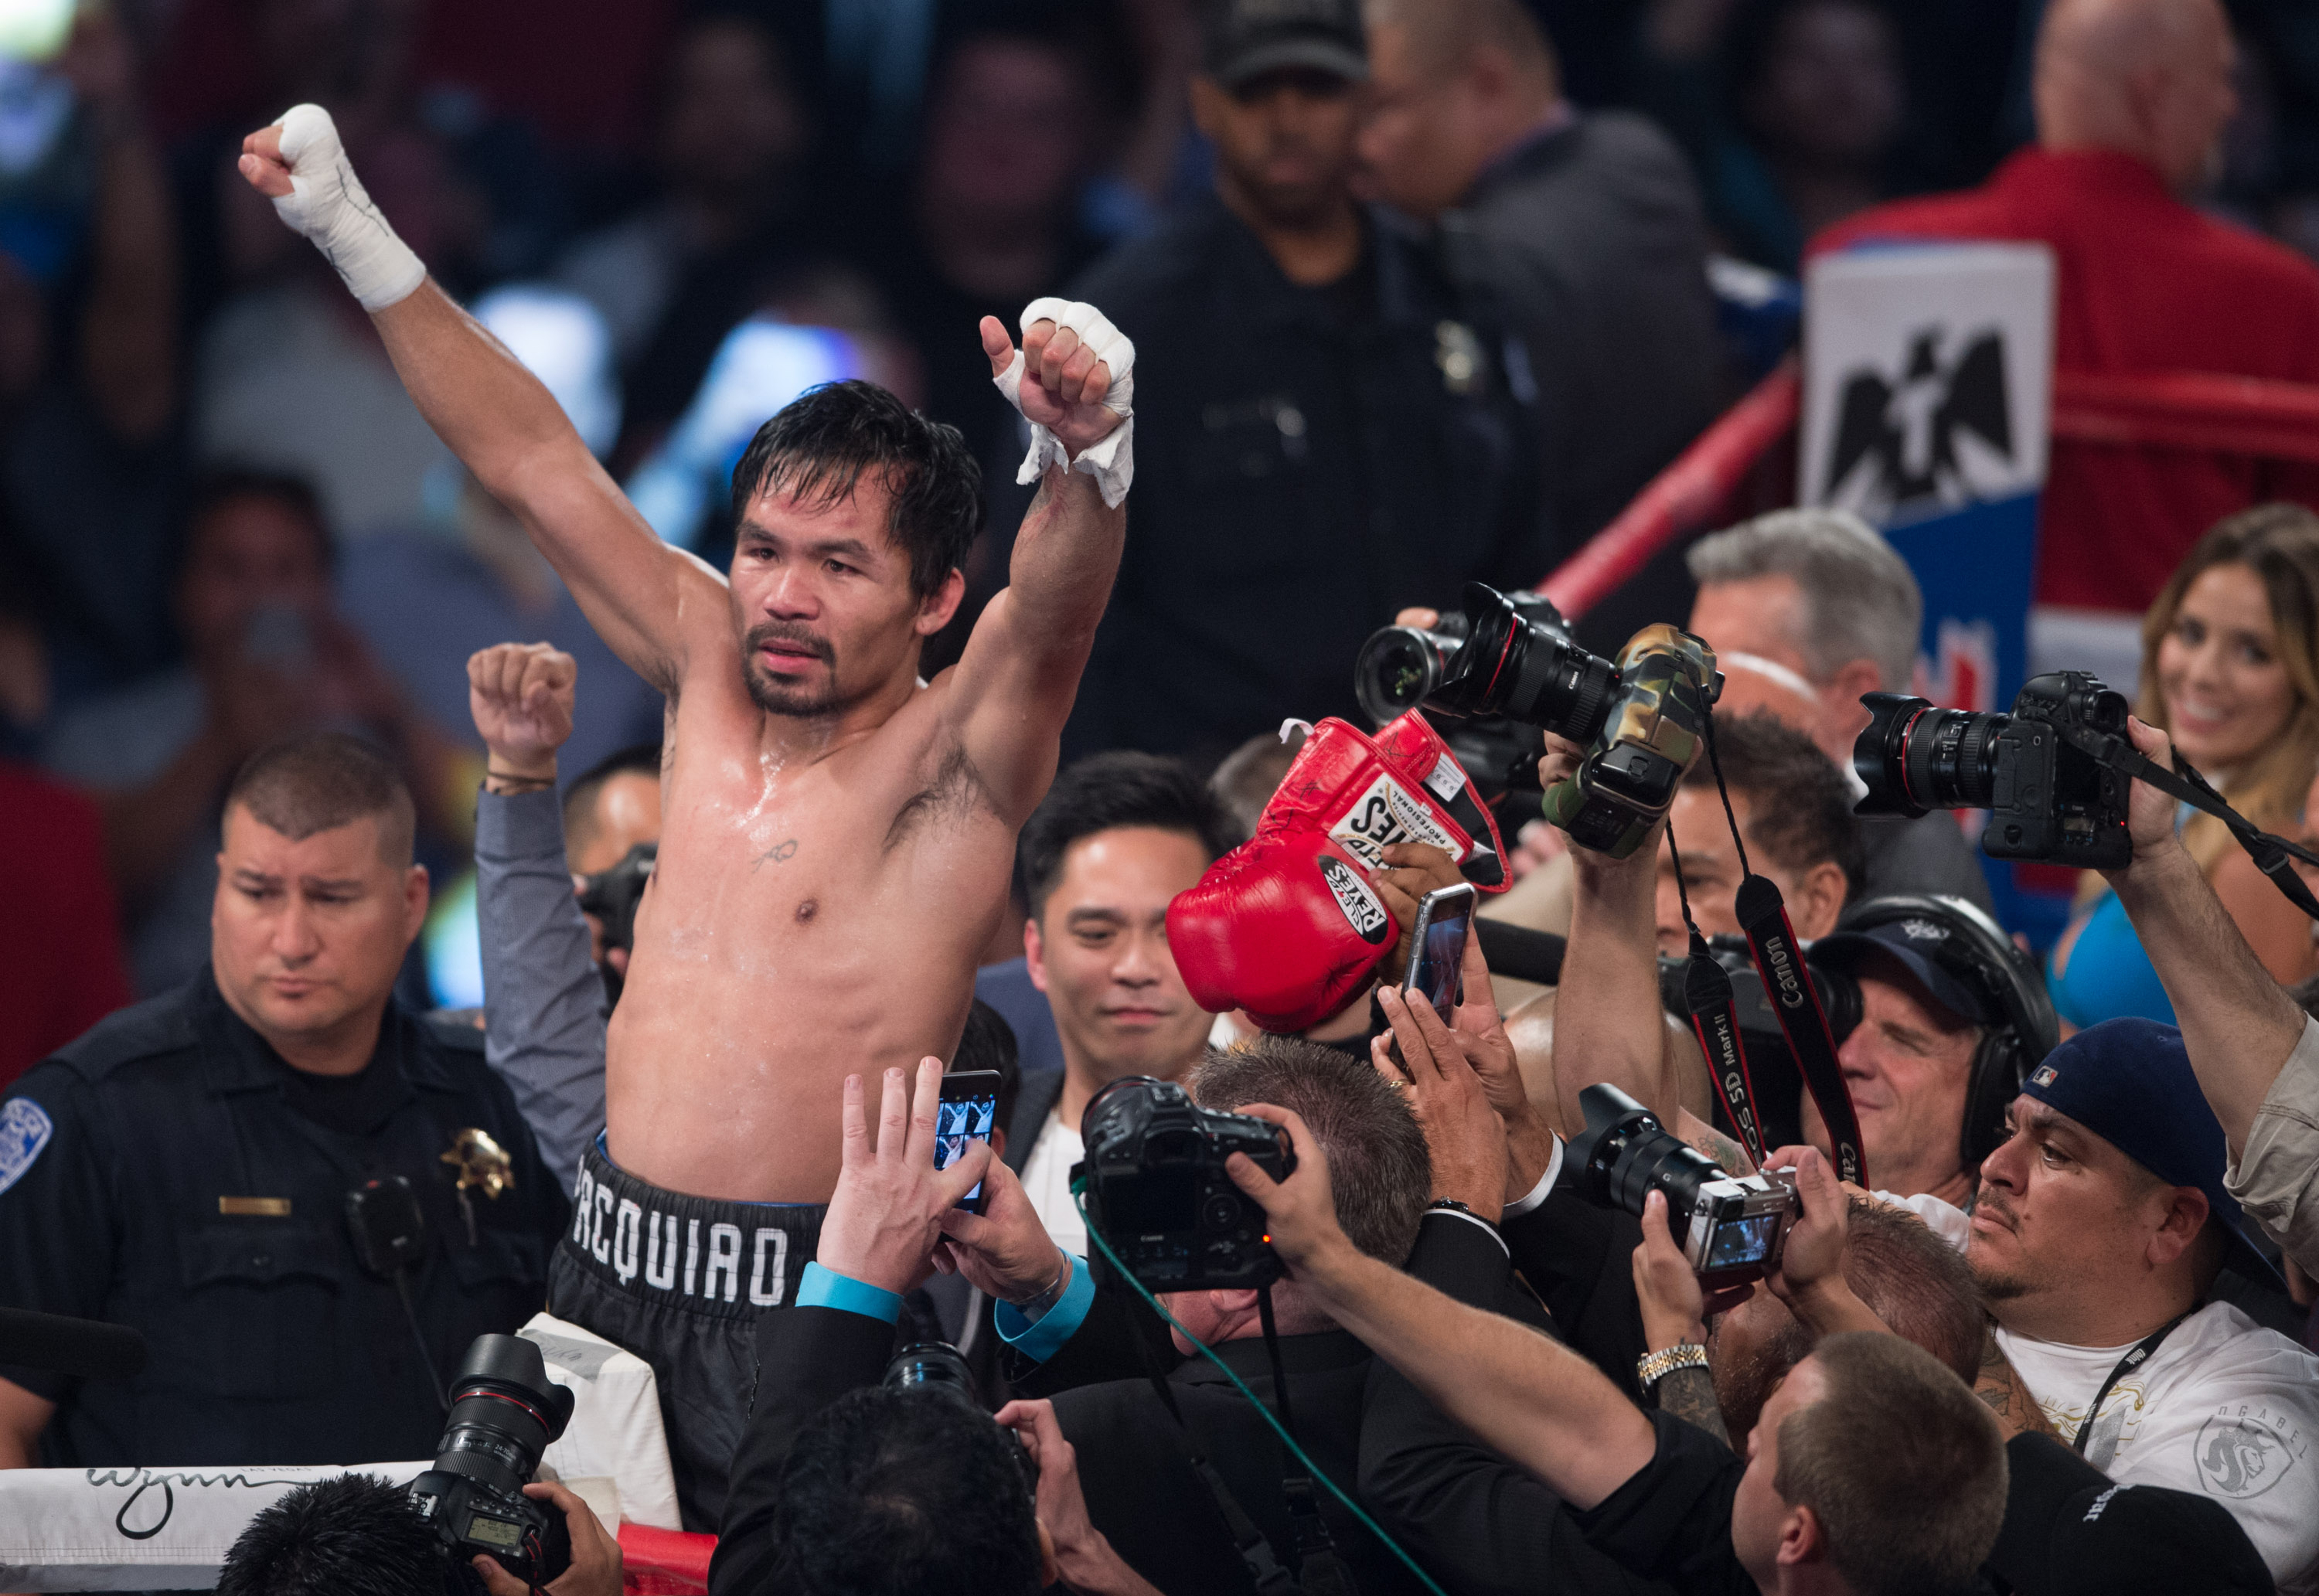 Twitter Reacts To This Week's Bonkers Pacquiao Vs. McGregor Speculation